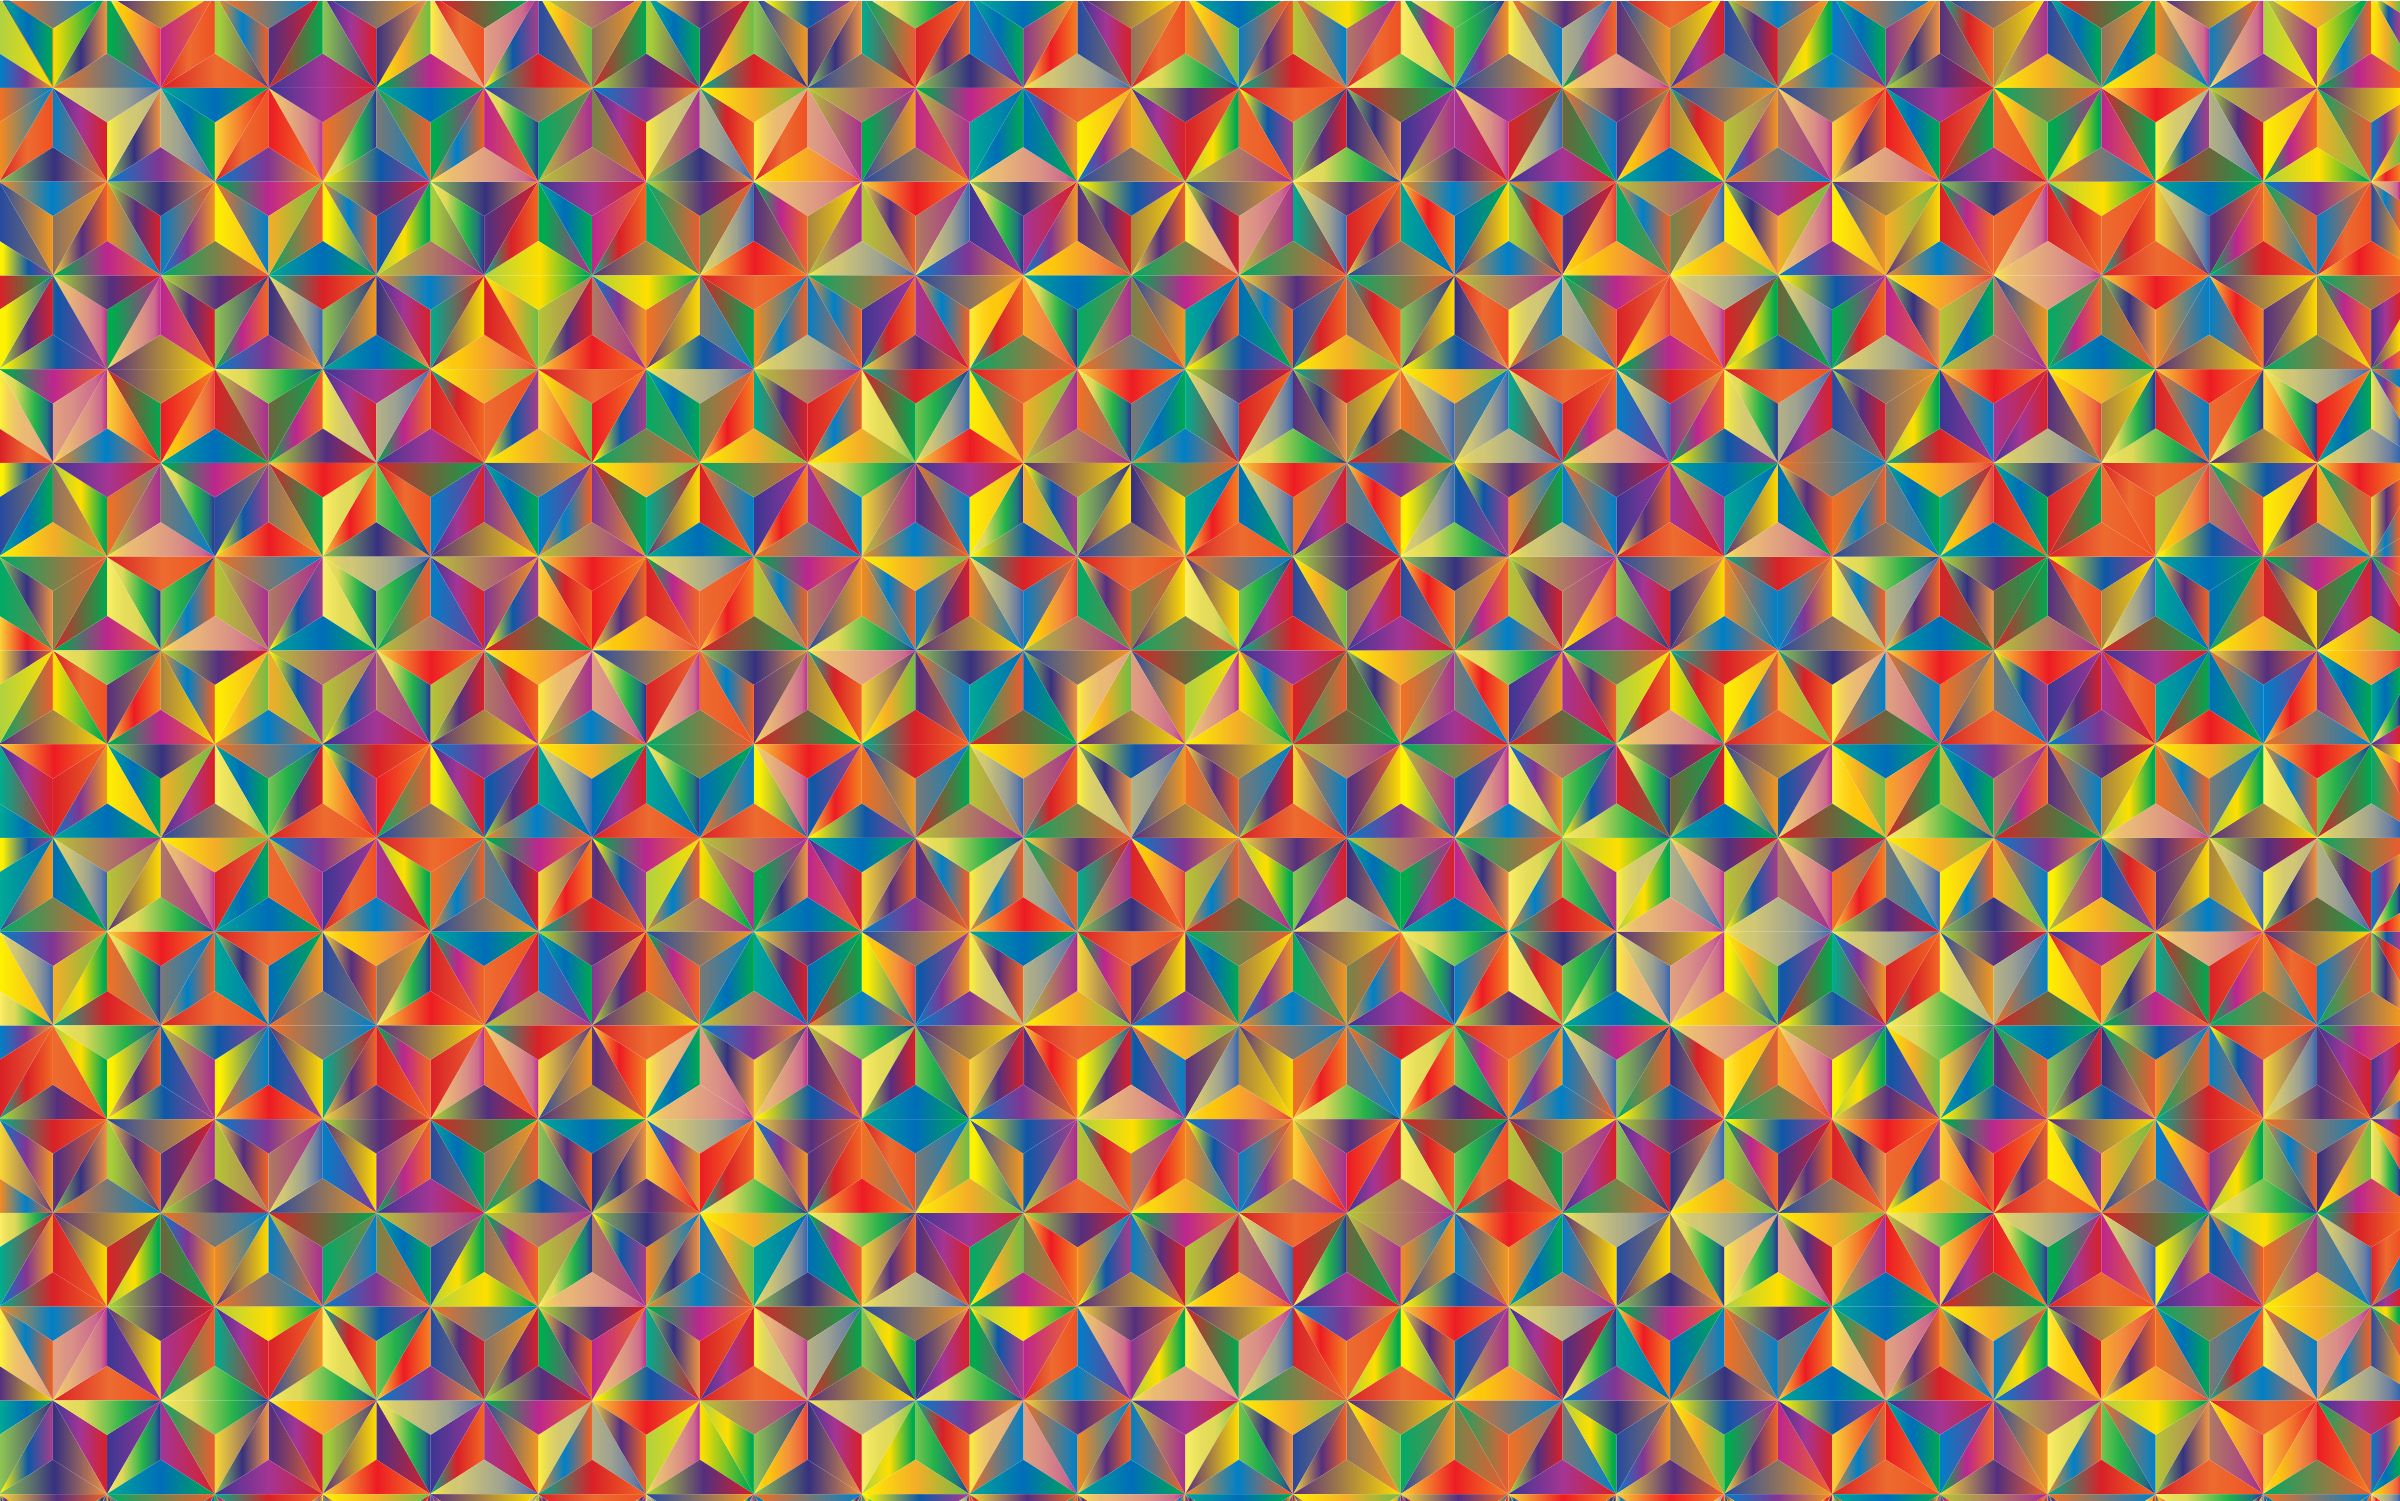 Prismatic Triangular Pattern 3 by GDJ